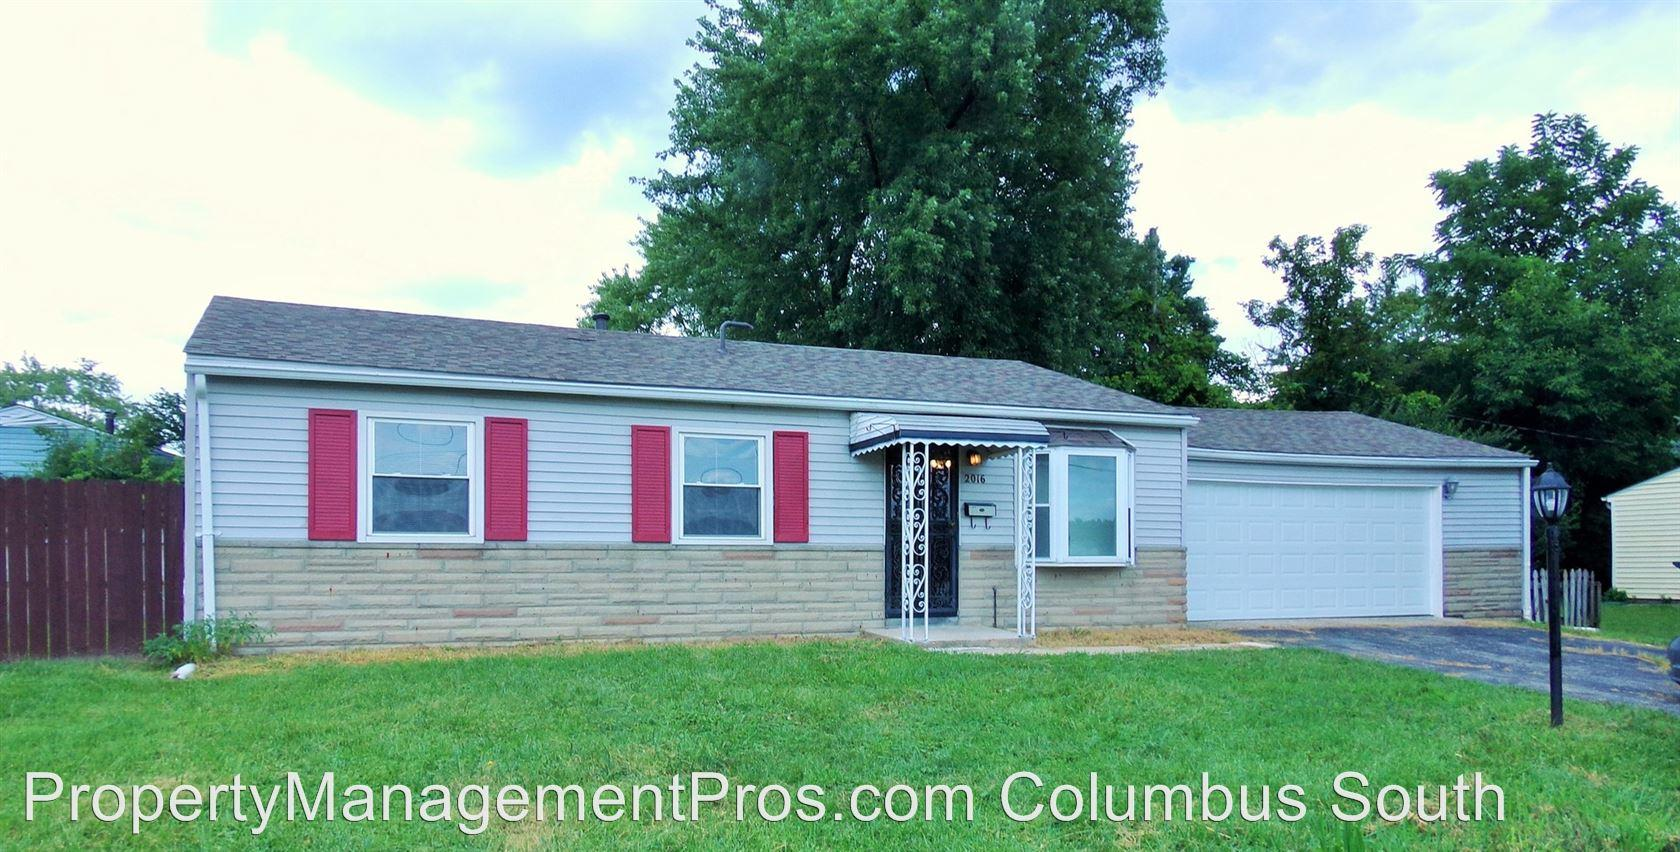 2016 Woodward Ave, Columbus, OH 43219 For Rent | Trulia